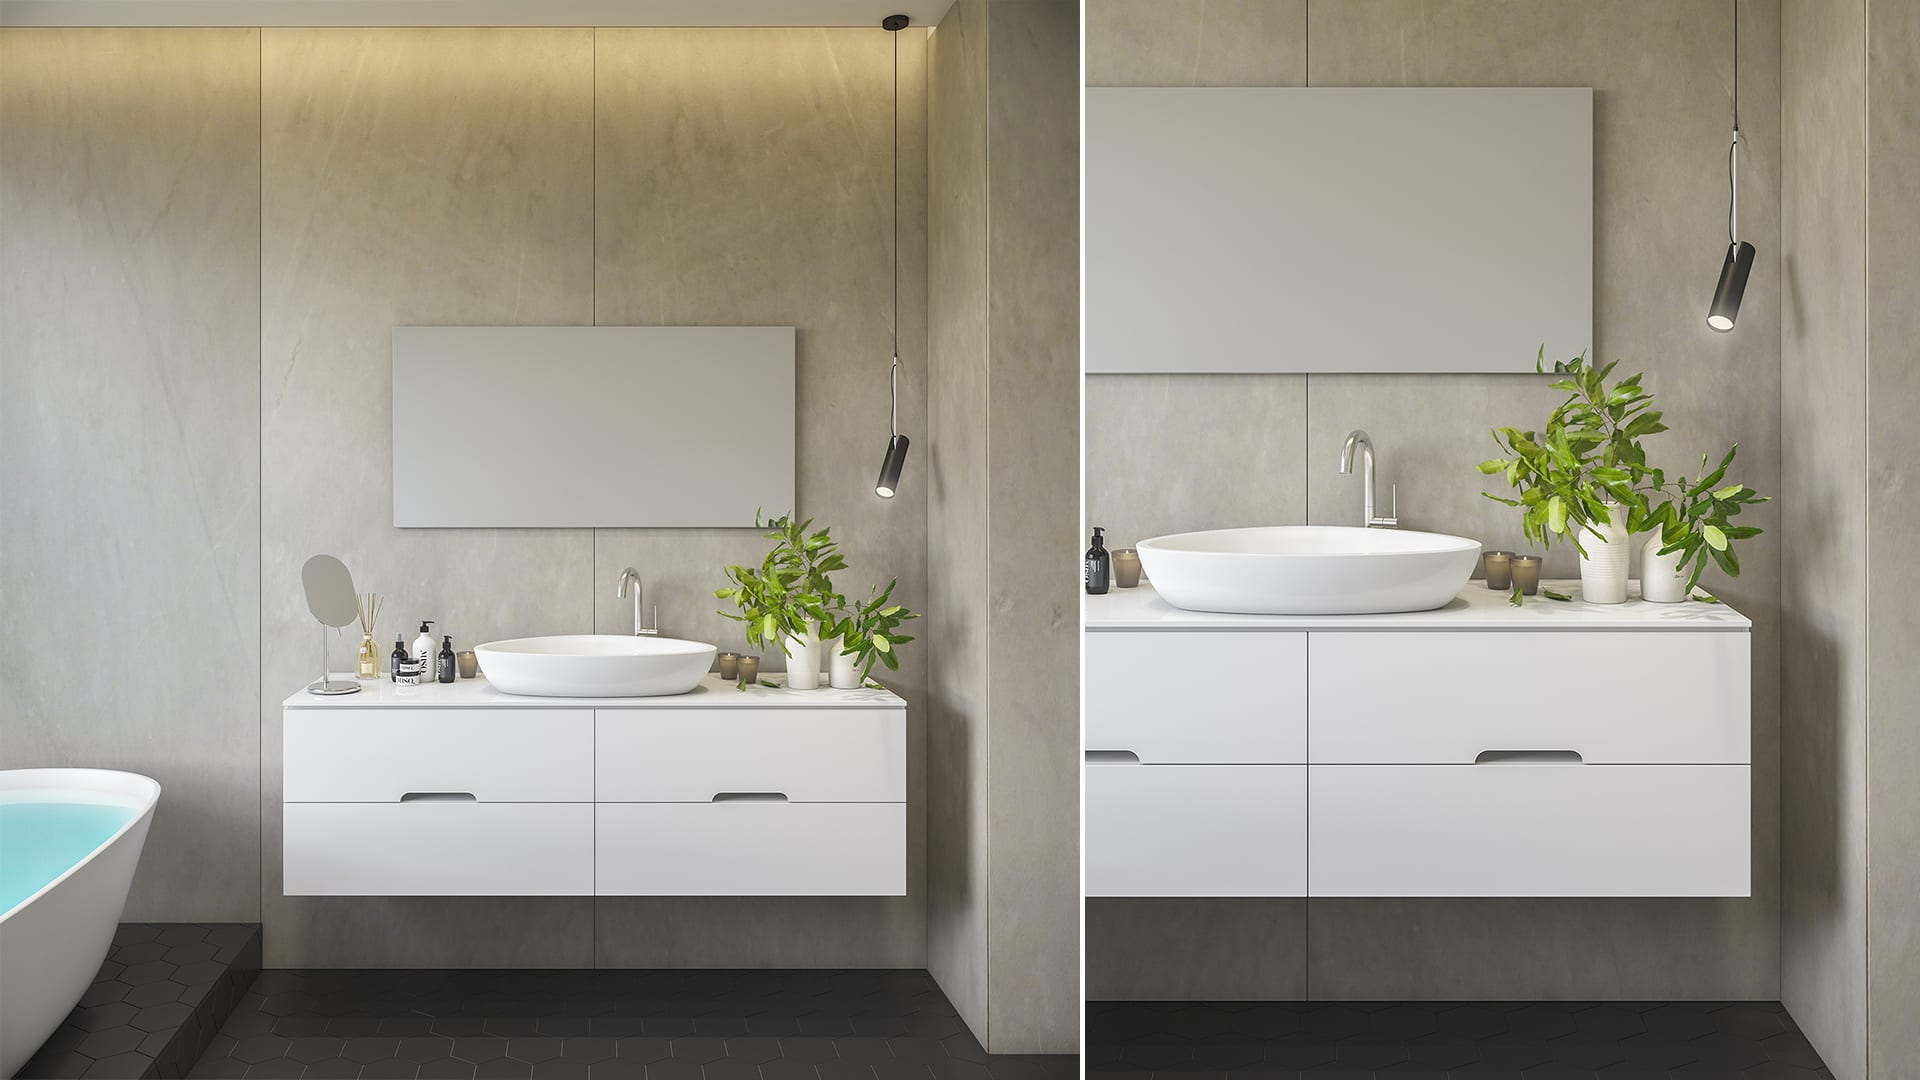 Maayan-Golan_Architectural-Visualization_product-visualization_ Bathroom-cabinets_ company-Ambin-Systems_08